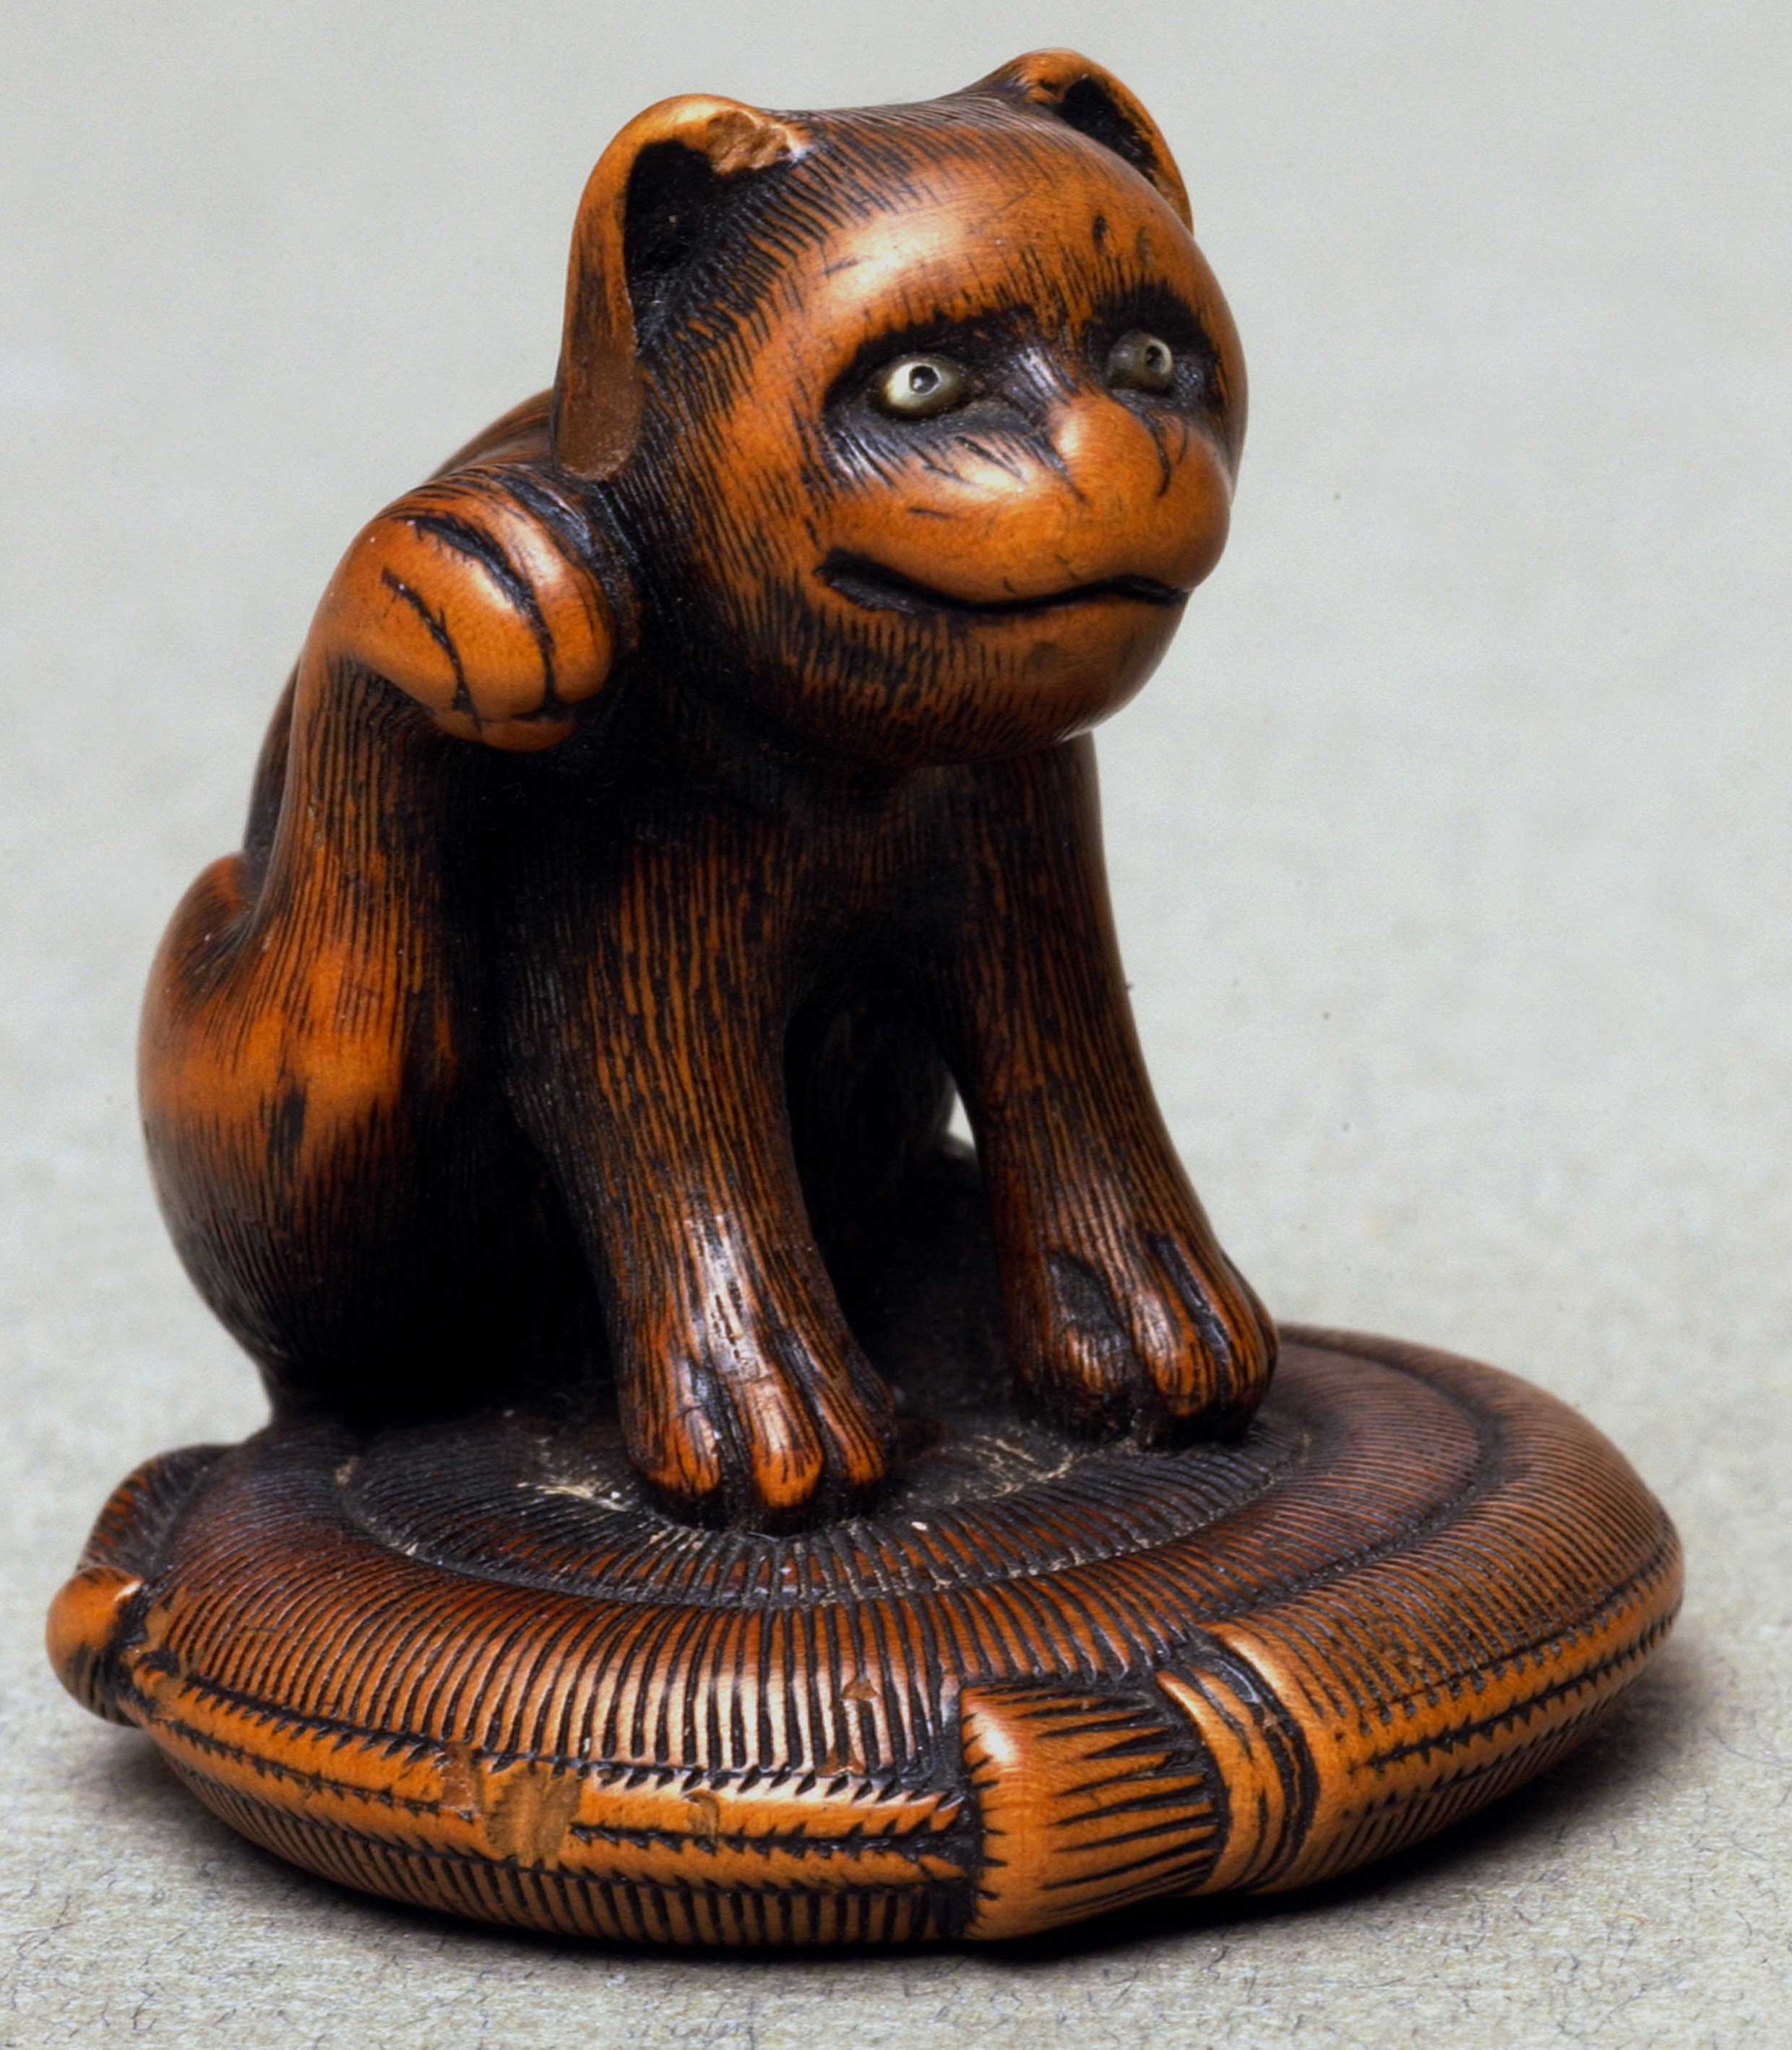 Netsuke depicting a cat scratching ear